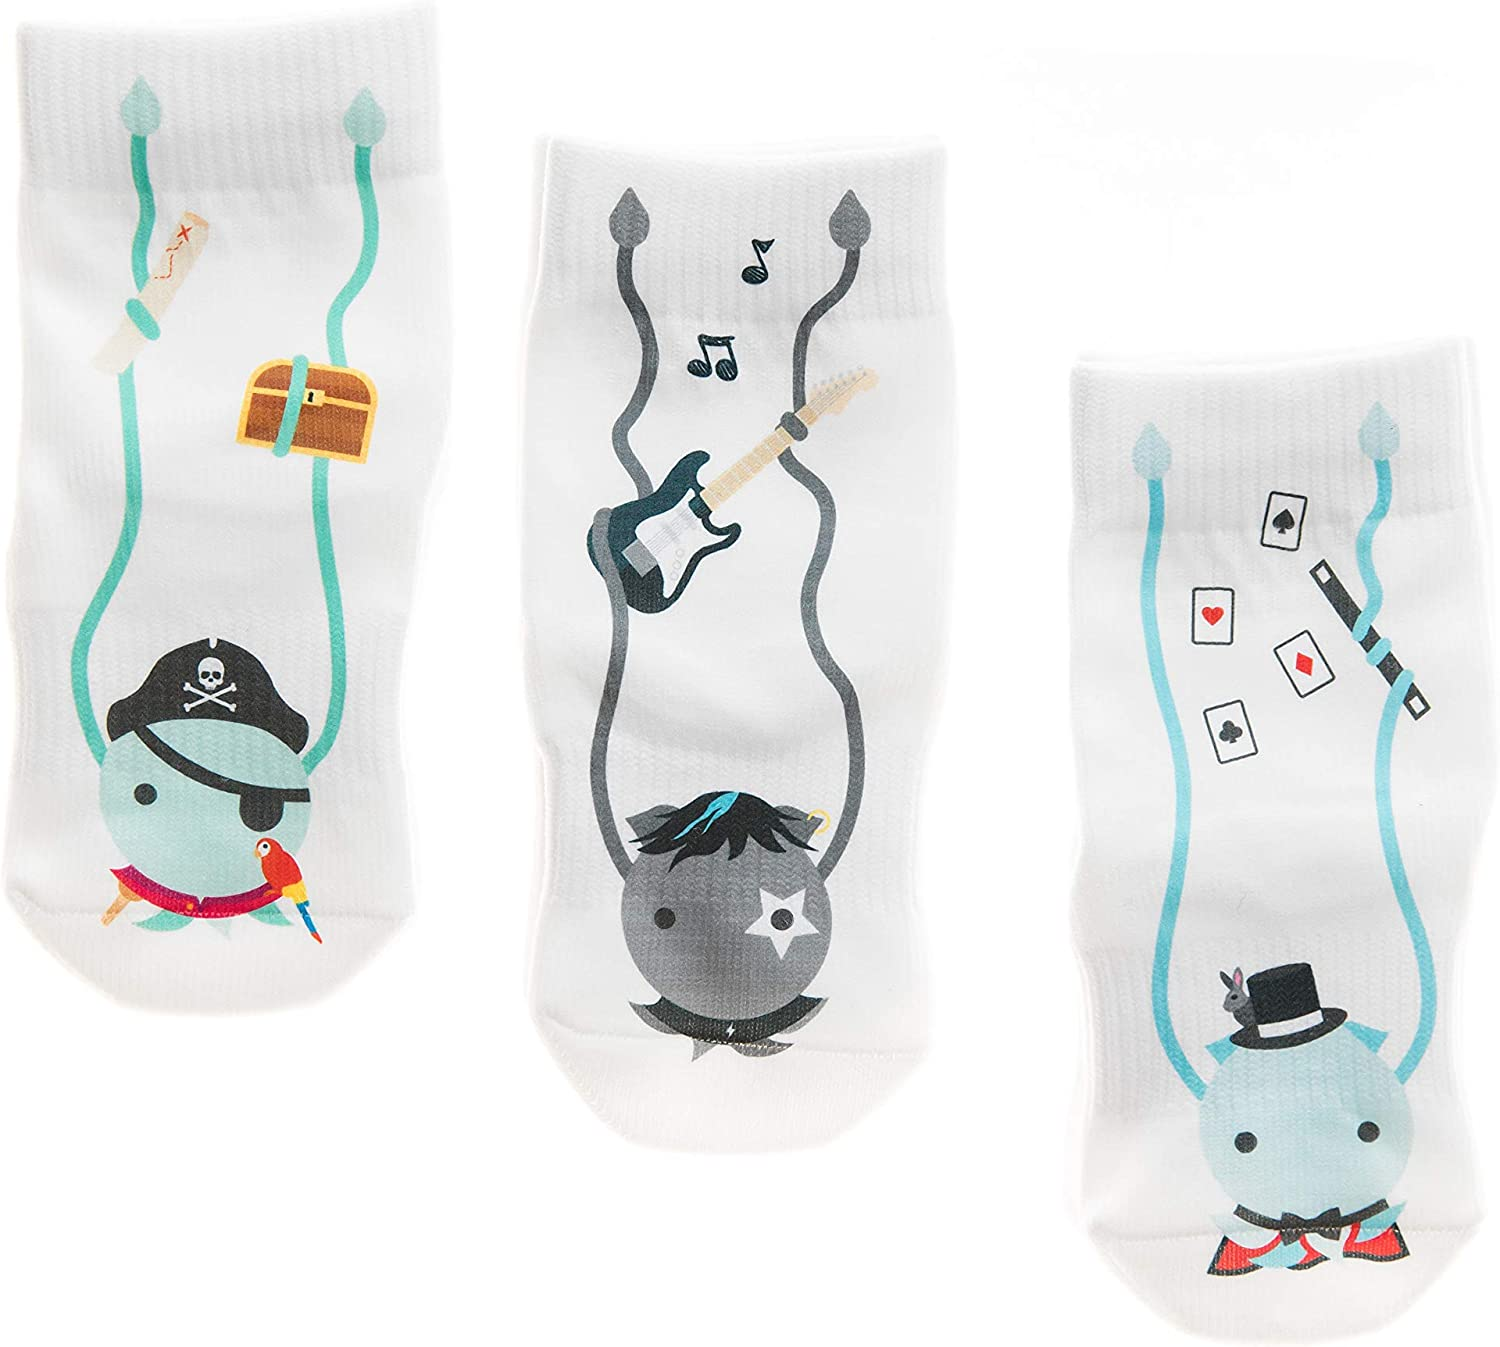 socks that don/'t come off Squid Socks Unisex 3 pack 0-3y//o Corey as seen on Shark Tank patent pending design